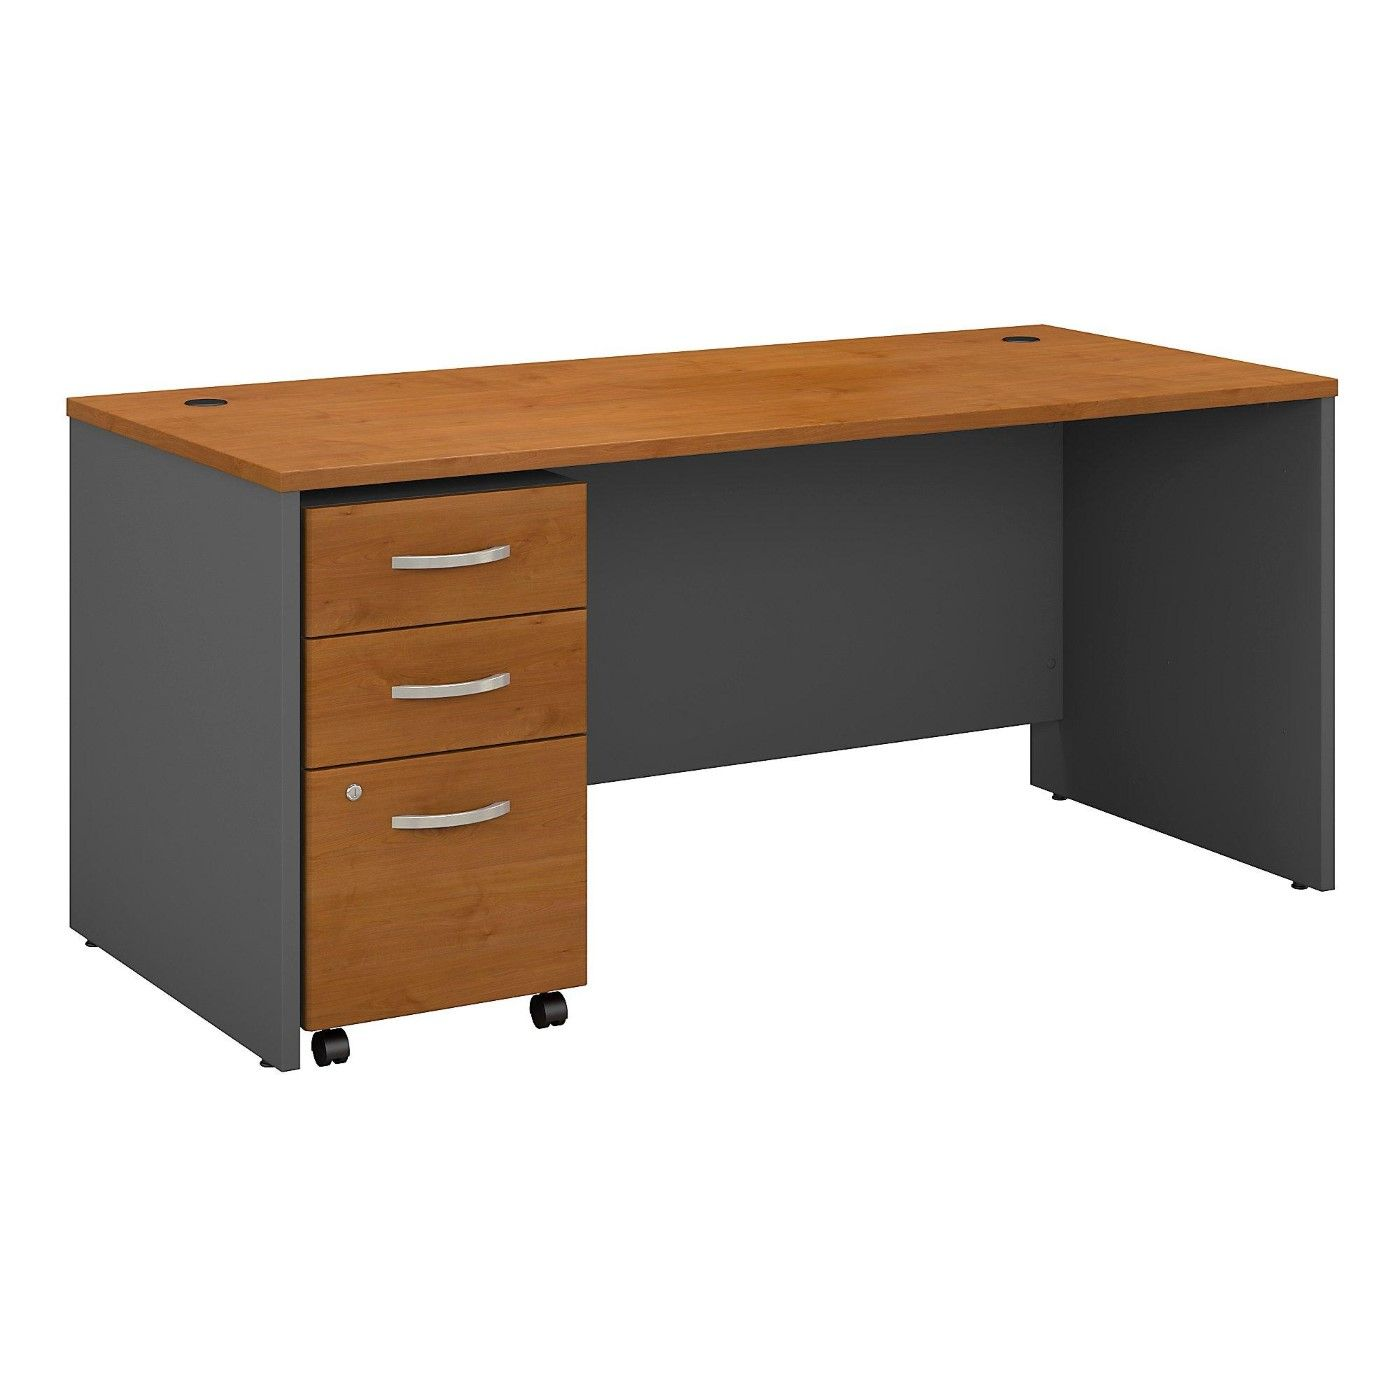 <font color=#c60><b>BUSH BUSINESS FURNITURE SERIES C 66W X 30D OFFICE DESK WITH MOBILE FILE CABINET. FREE SHIPPING</font></b>